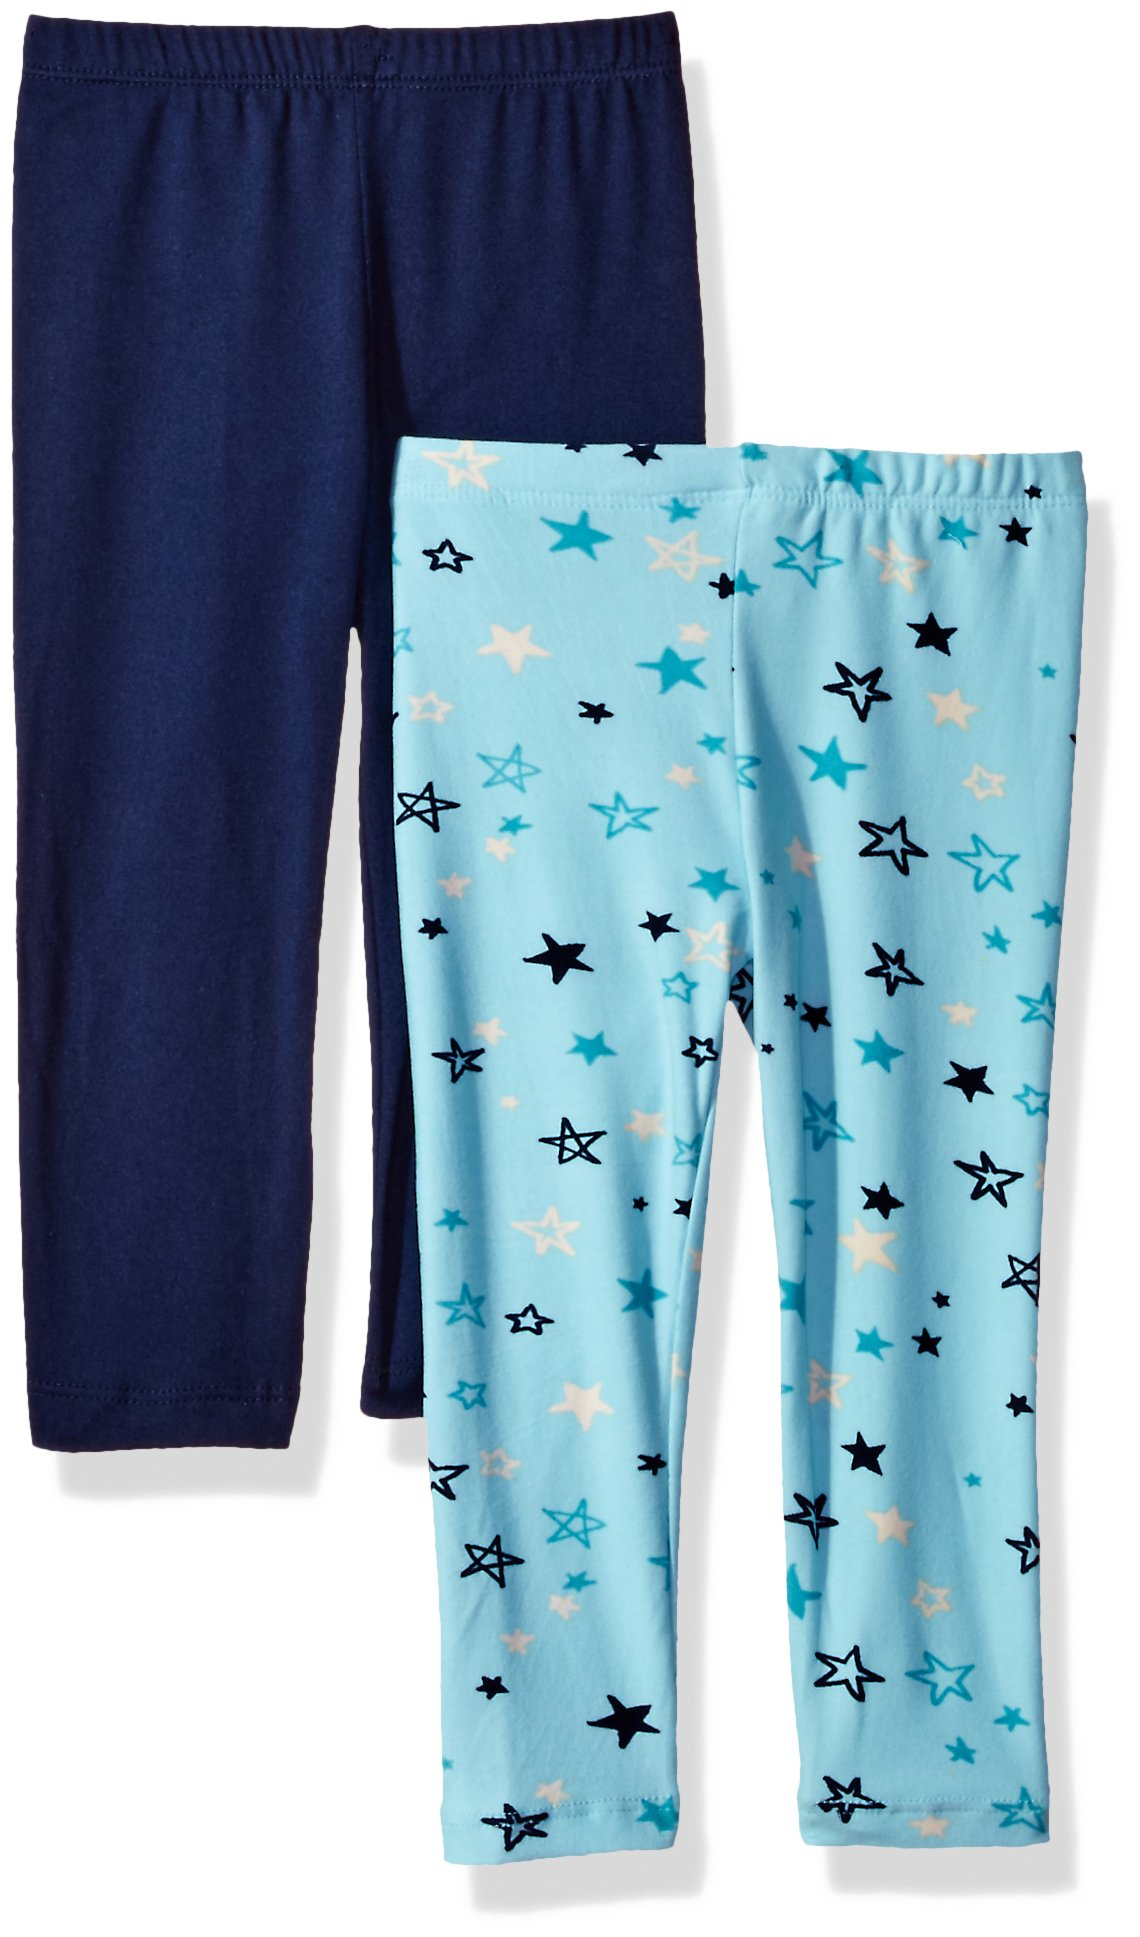 One Step Up Big Girls' 2 Pack Super Soft Legging, Mint/Medieval Blue, 10/12 by One Step Up